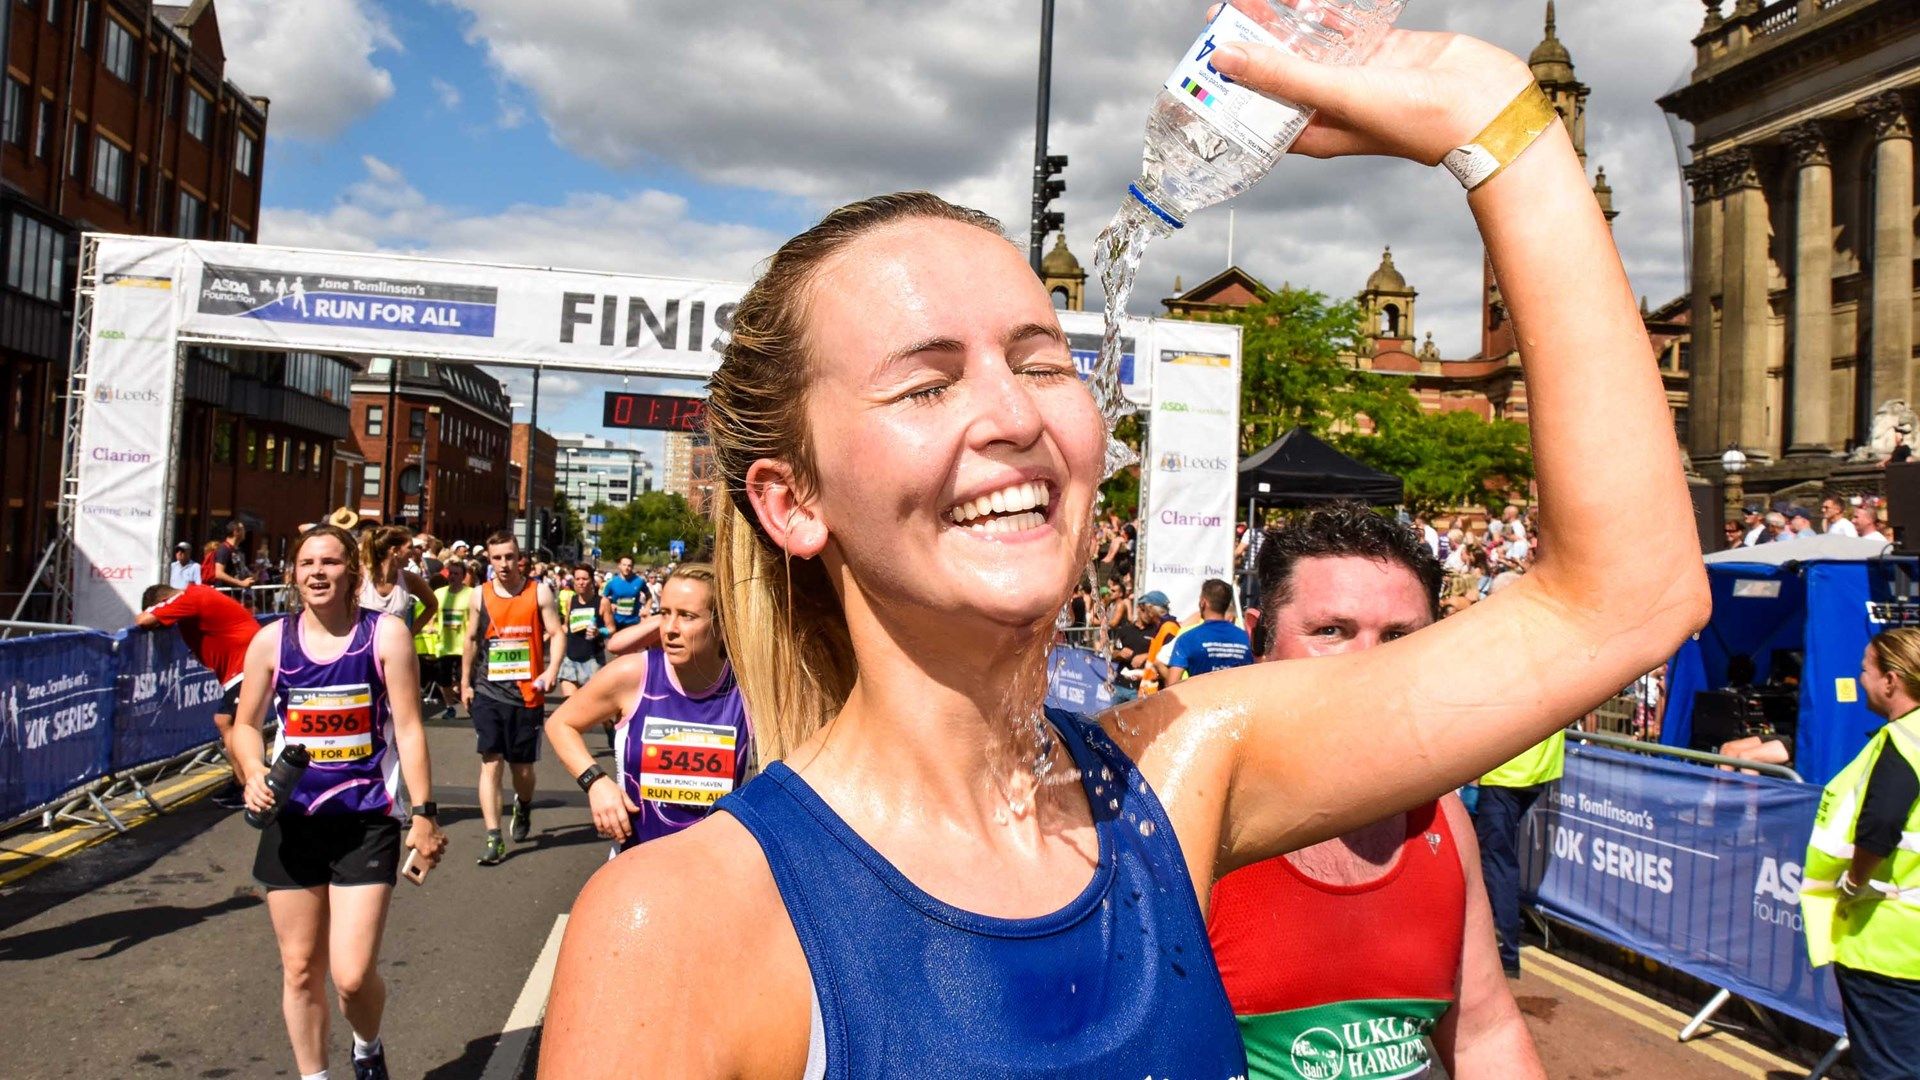 Finish Line - Jane Tomlinson Appeal